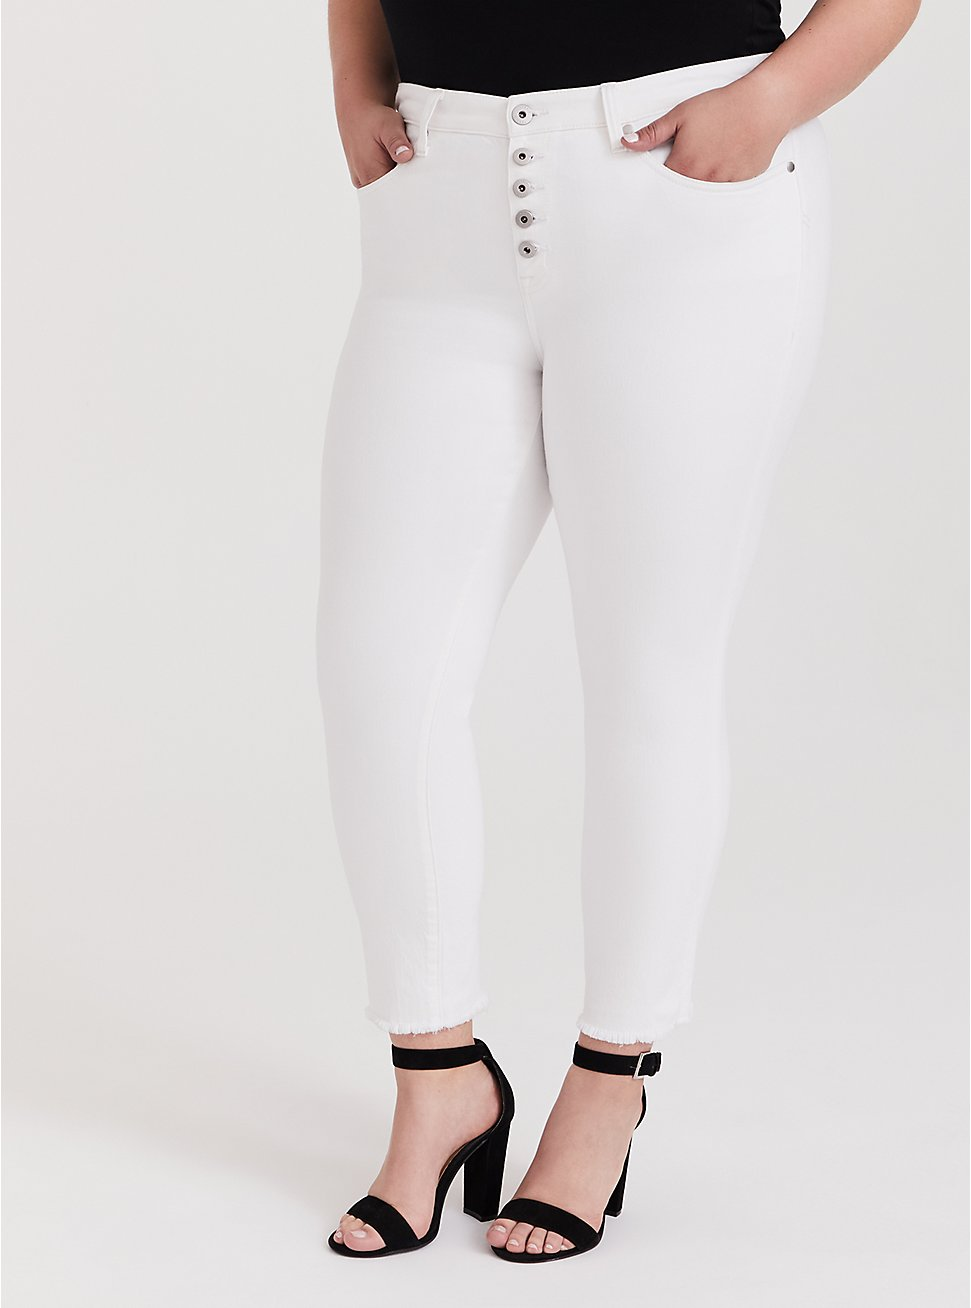 High Rise Straight Jean - White with Raw Hem, OPTIC WHITE, hi-res